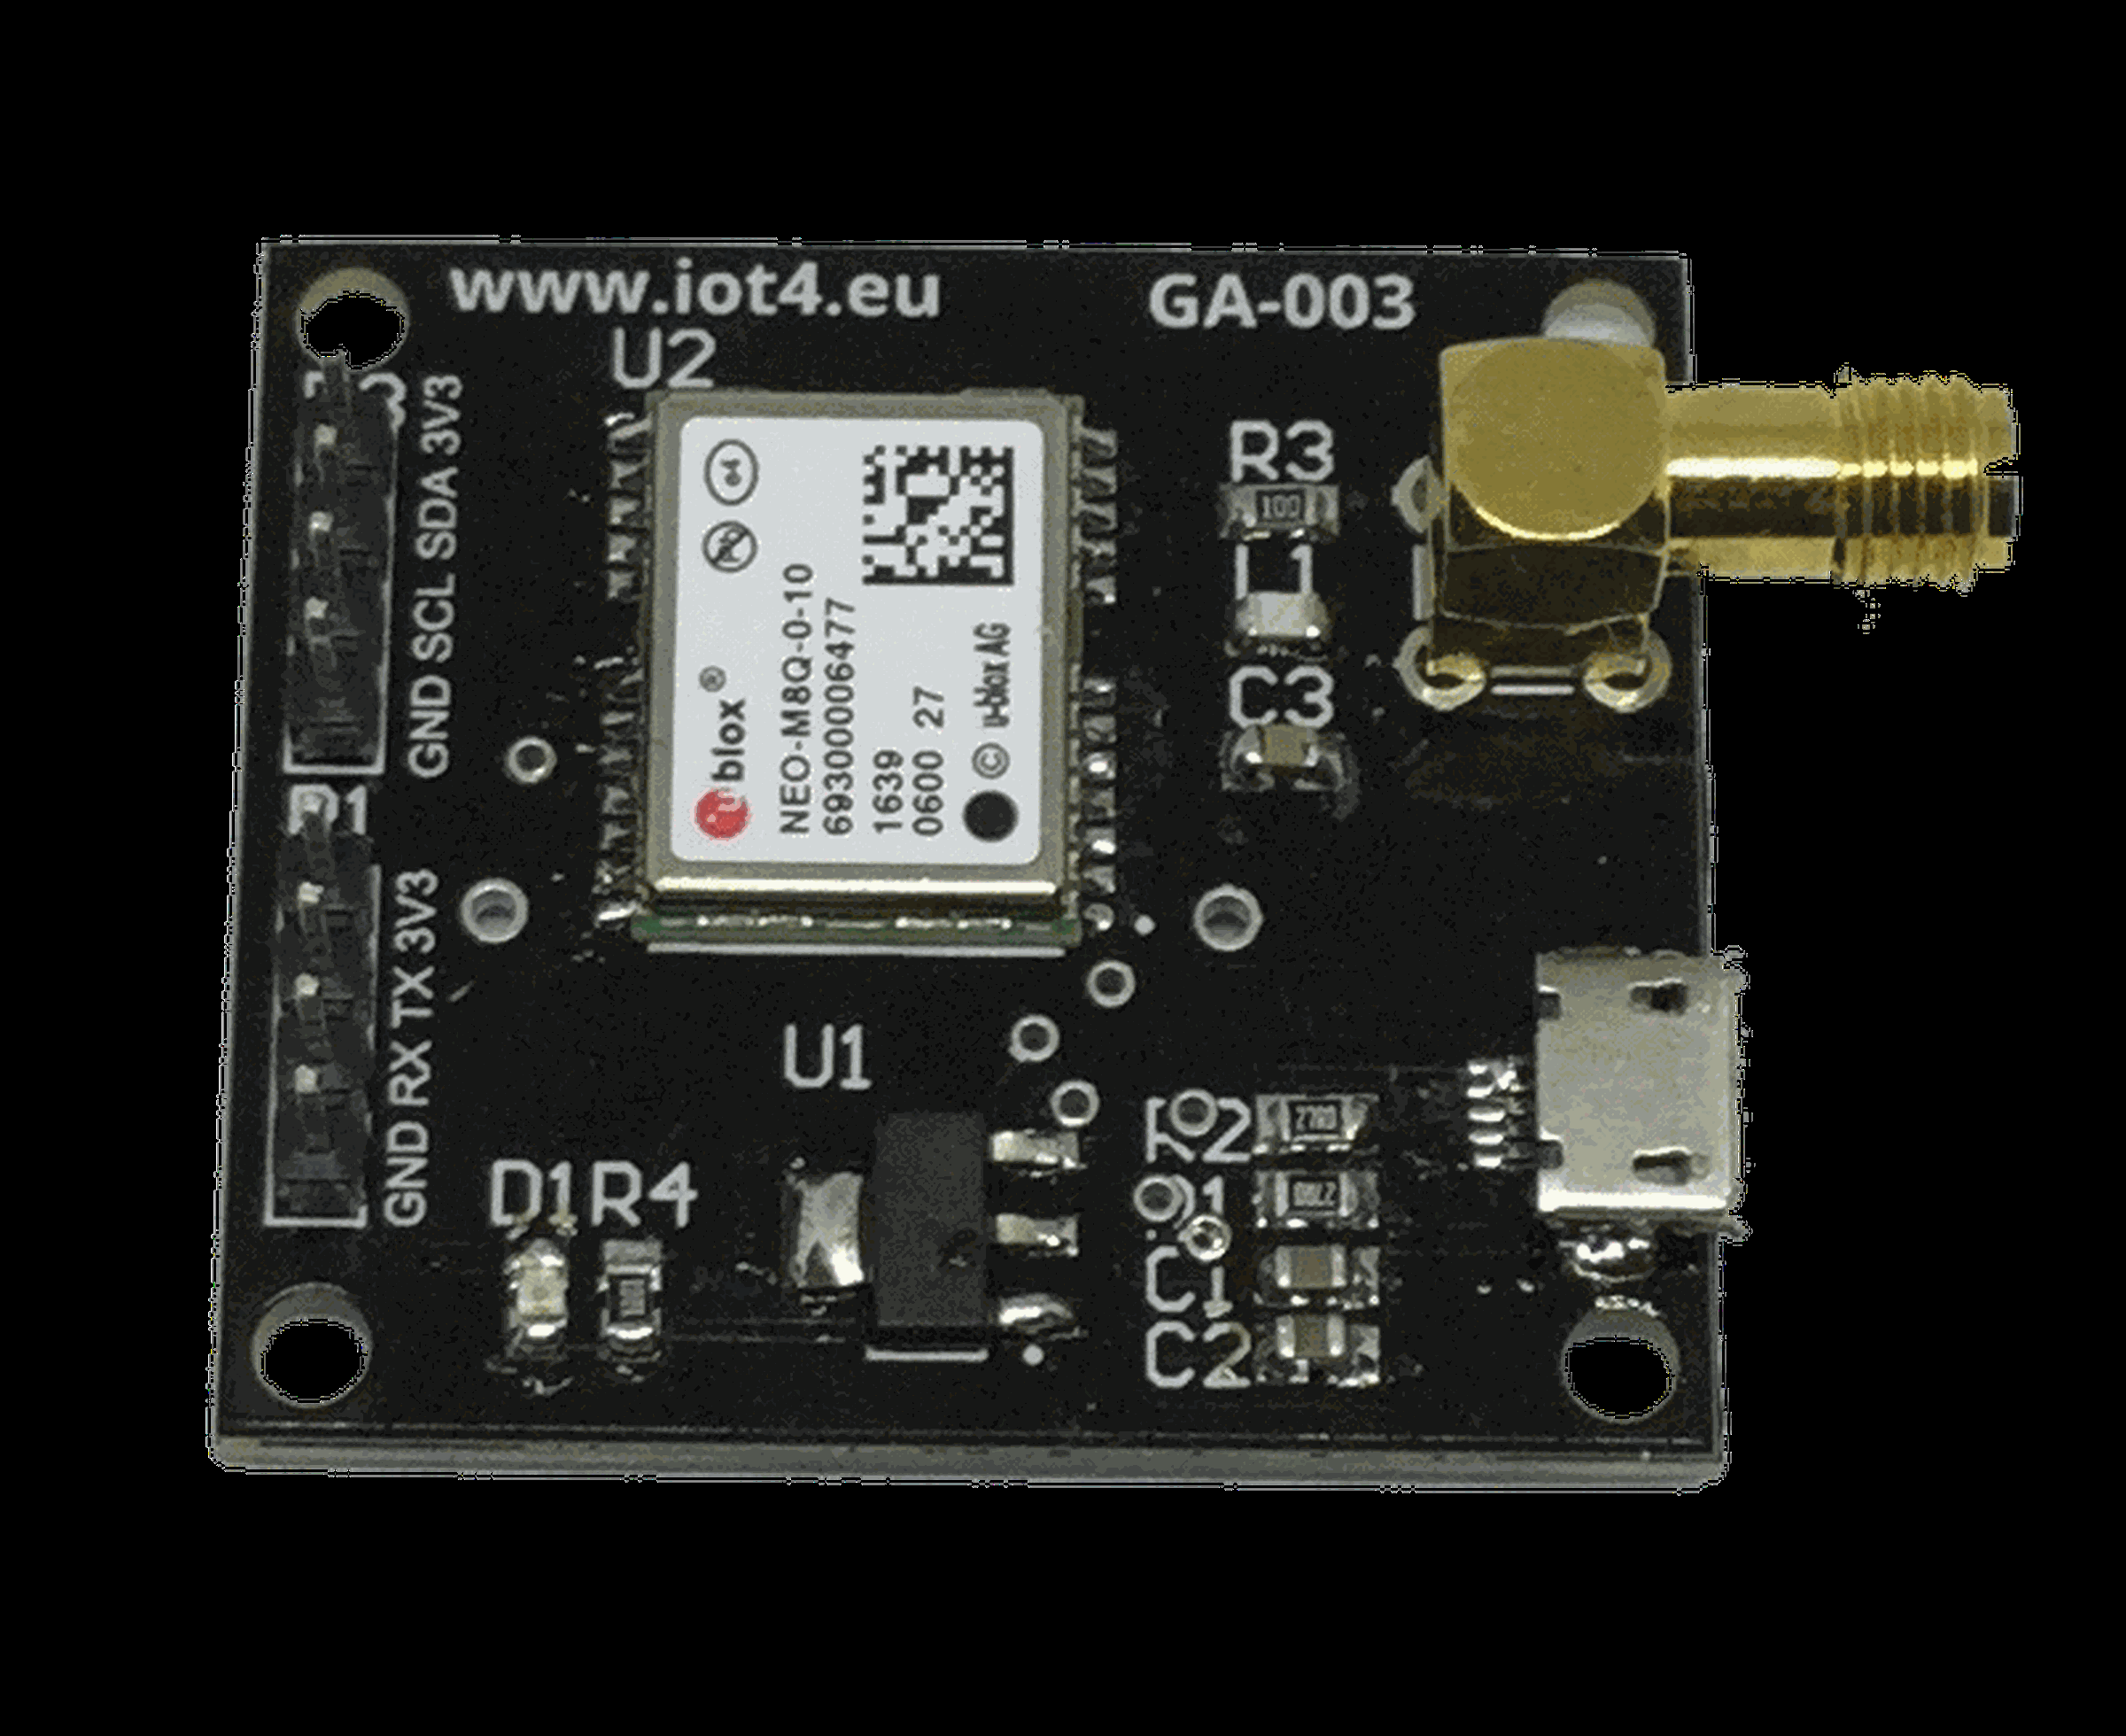 GA-001 Multi GNSS Ublox Lea M8S dev board from jrobi772 on Tindie